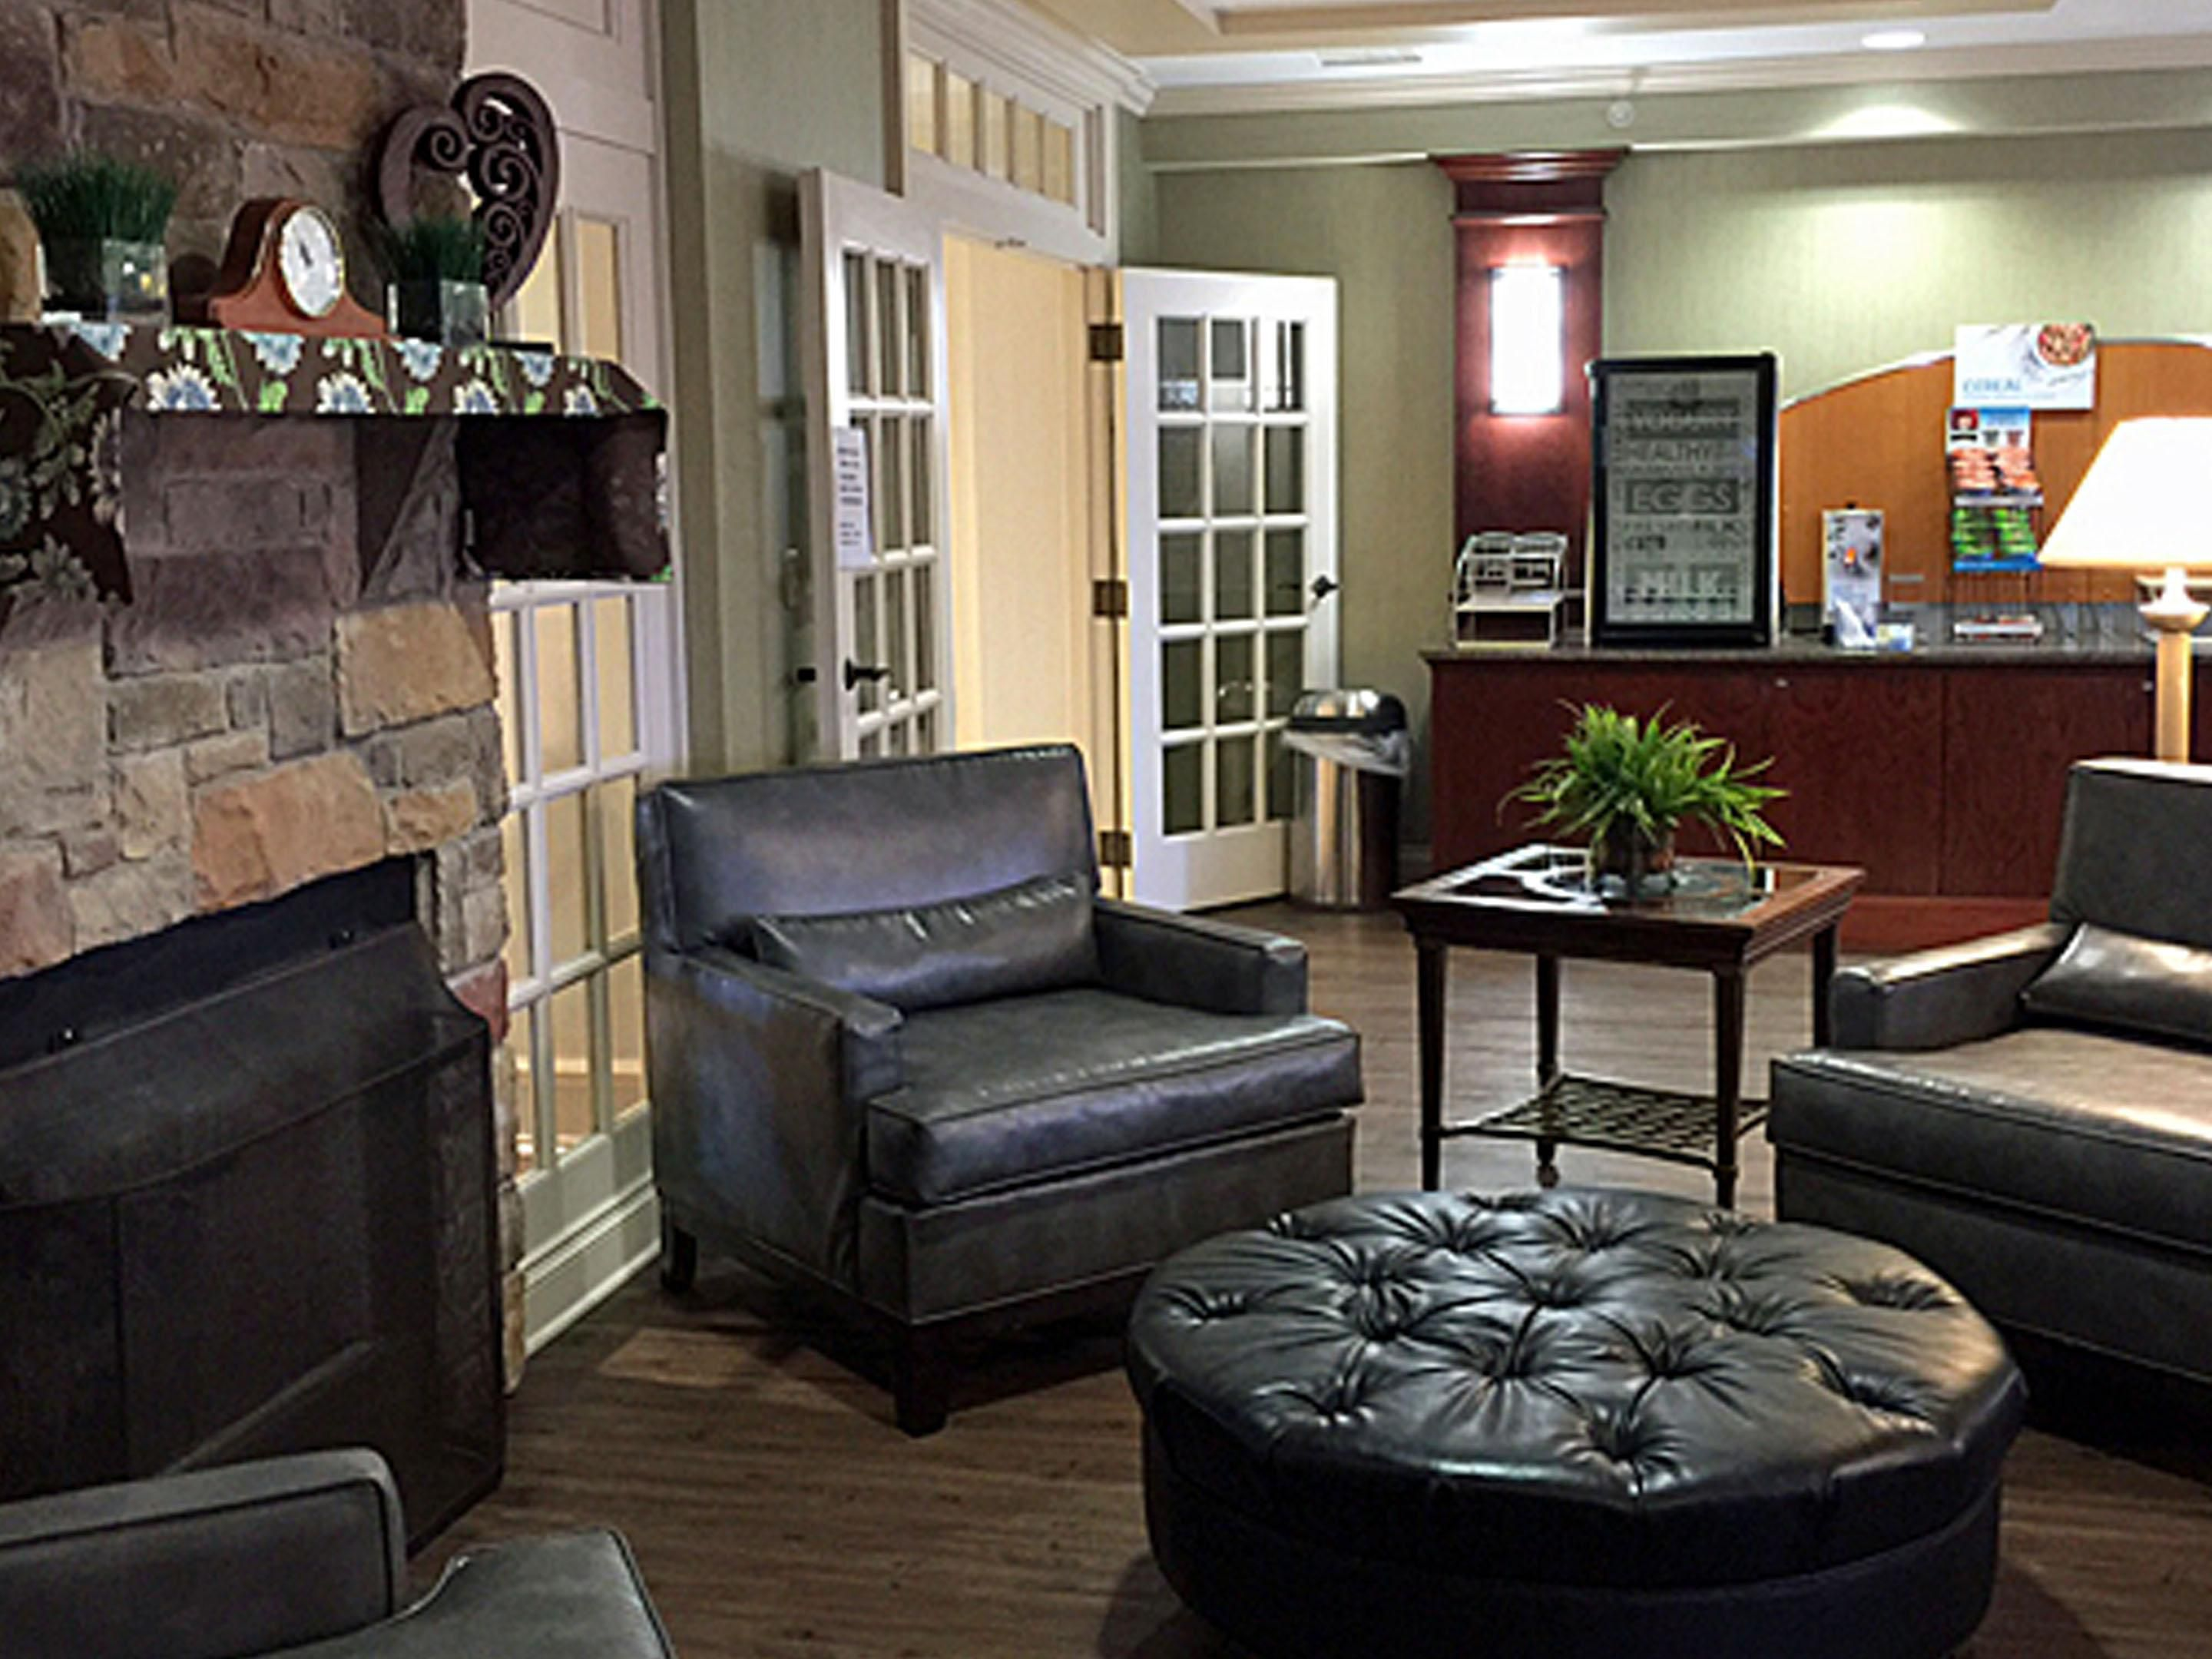 Holiday Inn Express Buffalo Airport Hotel Lobby